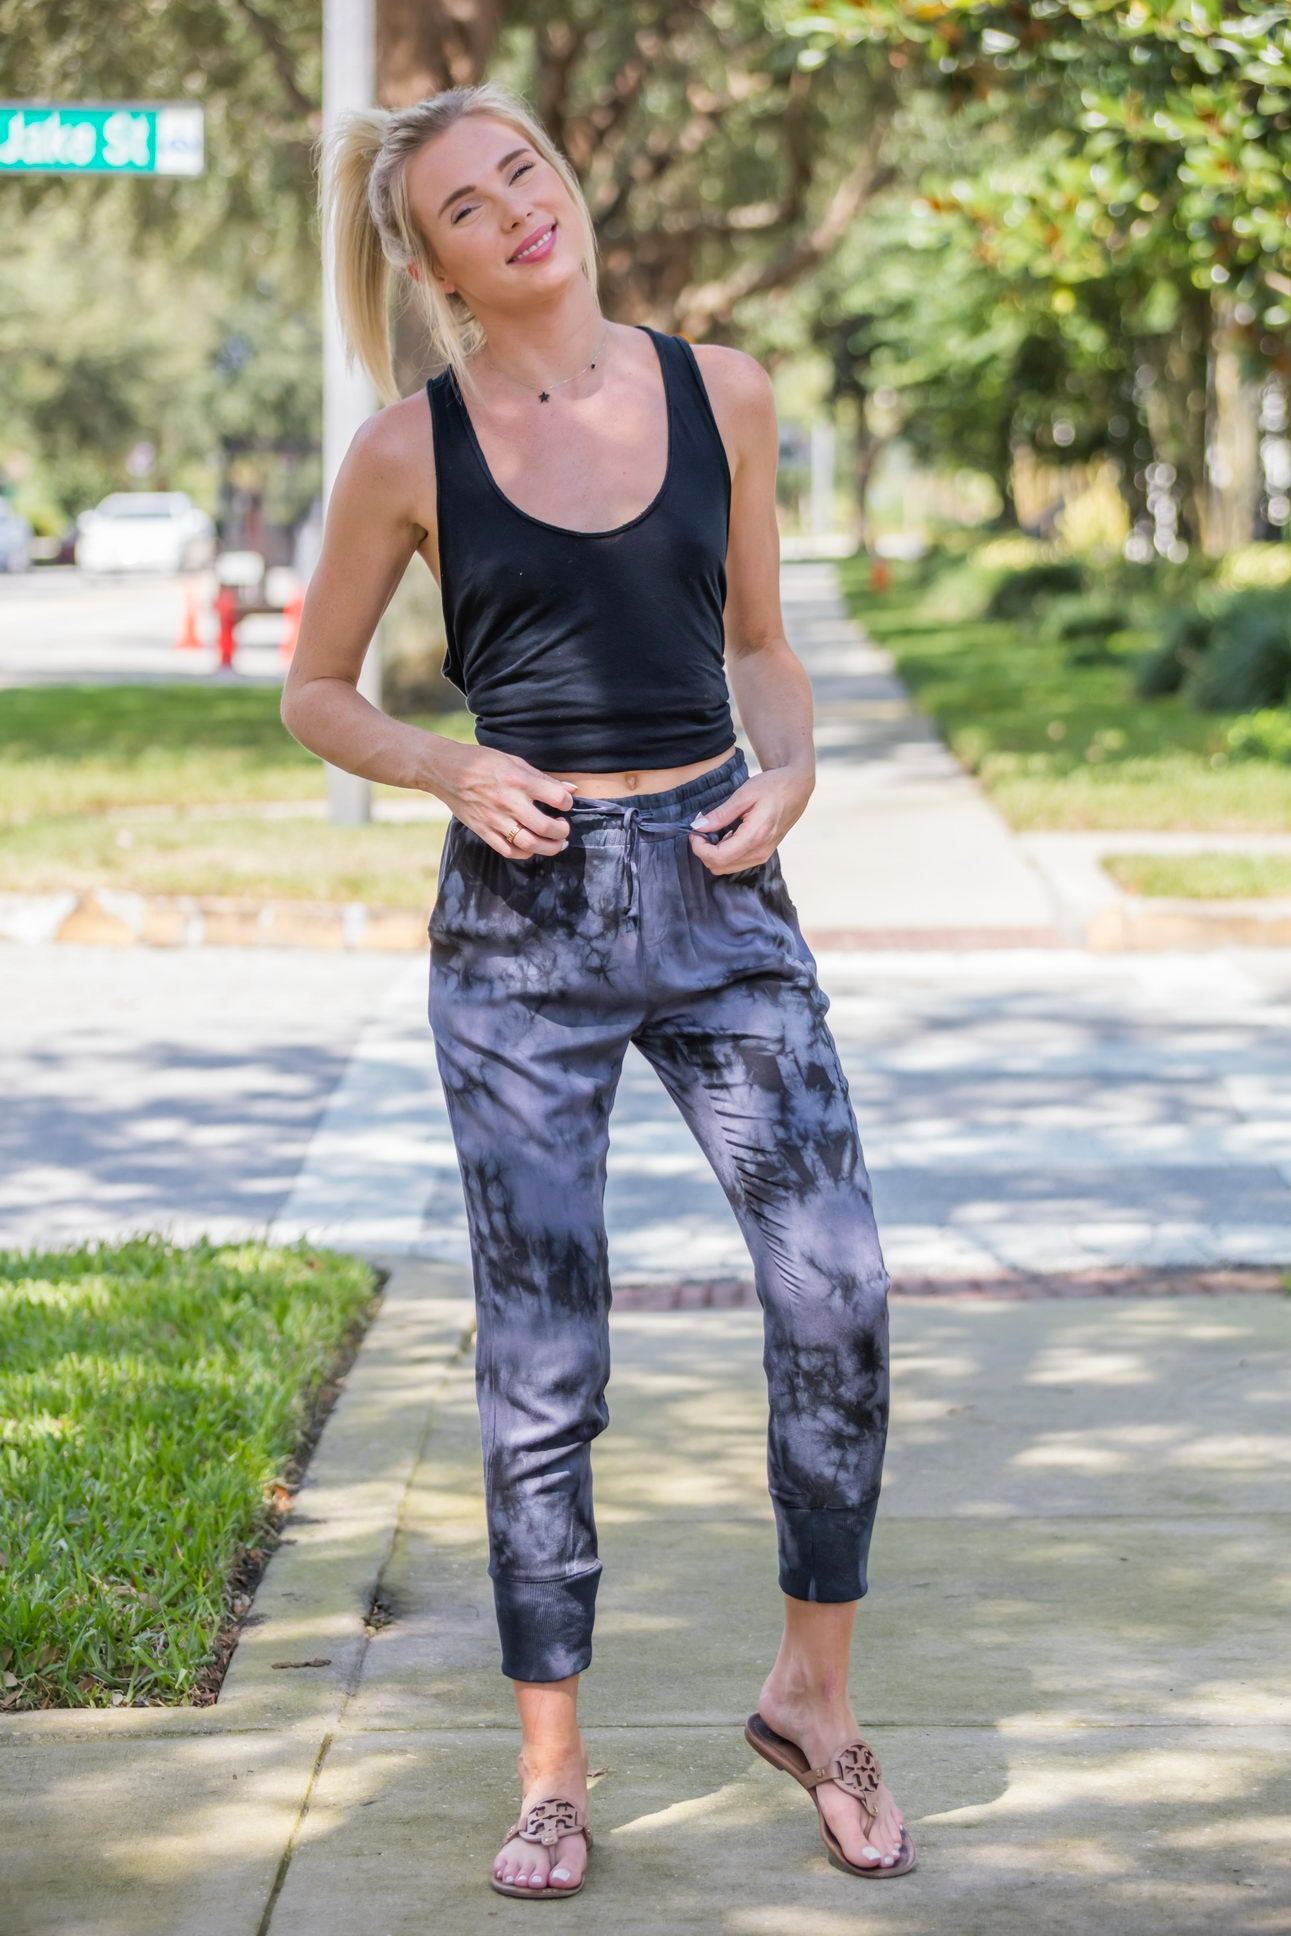 Tie Dye Black Cotton Joggers - Zuly Boutique Orlando Florida